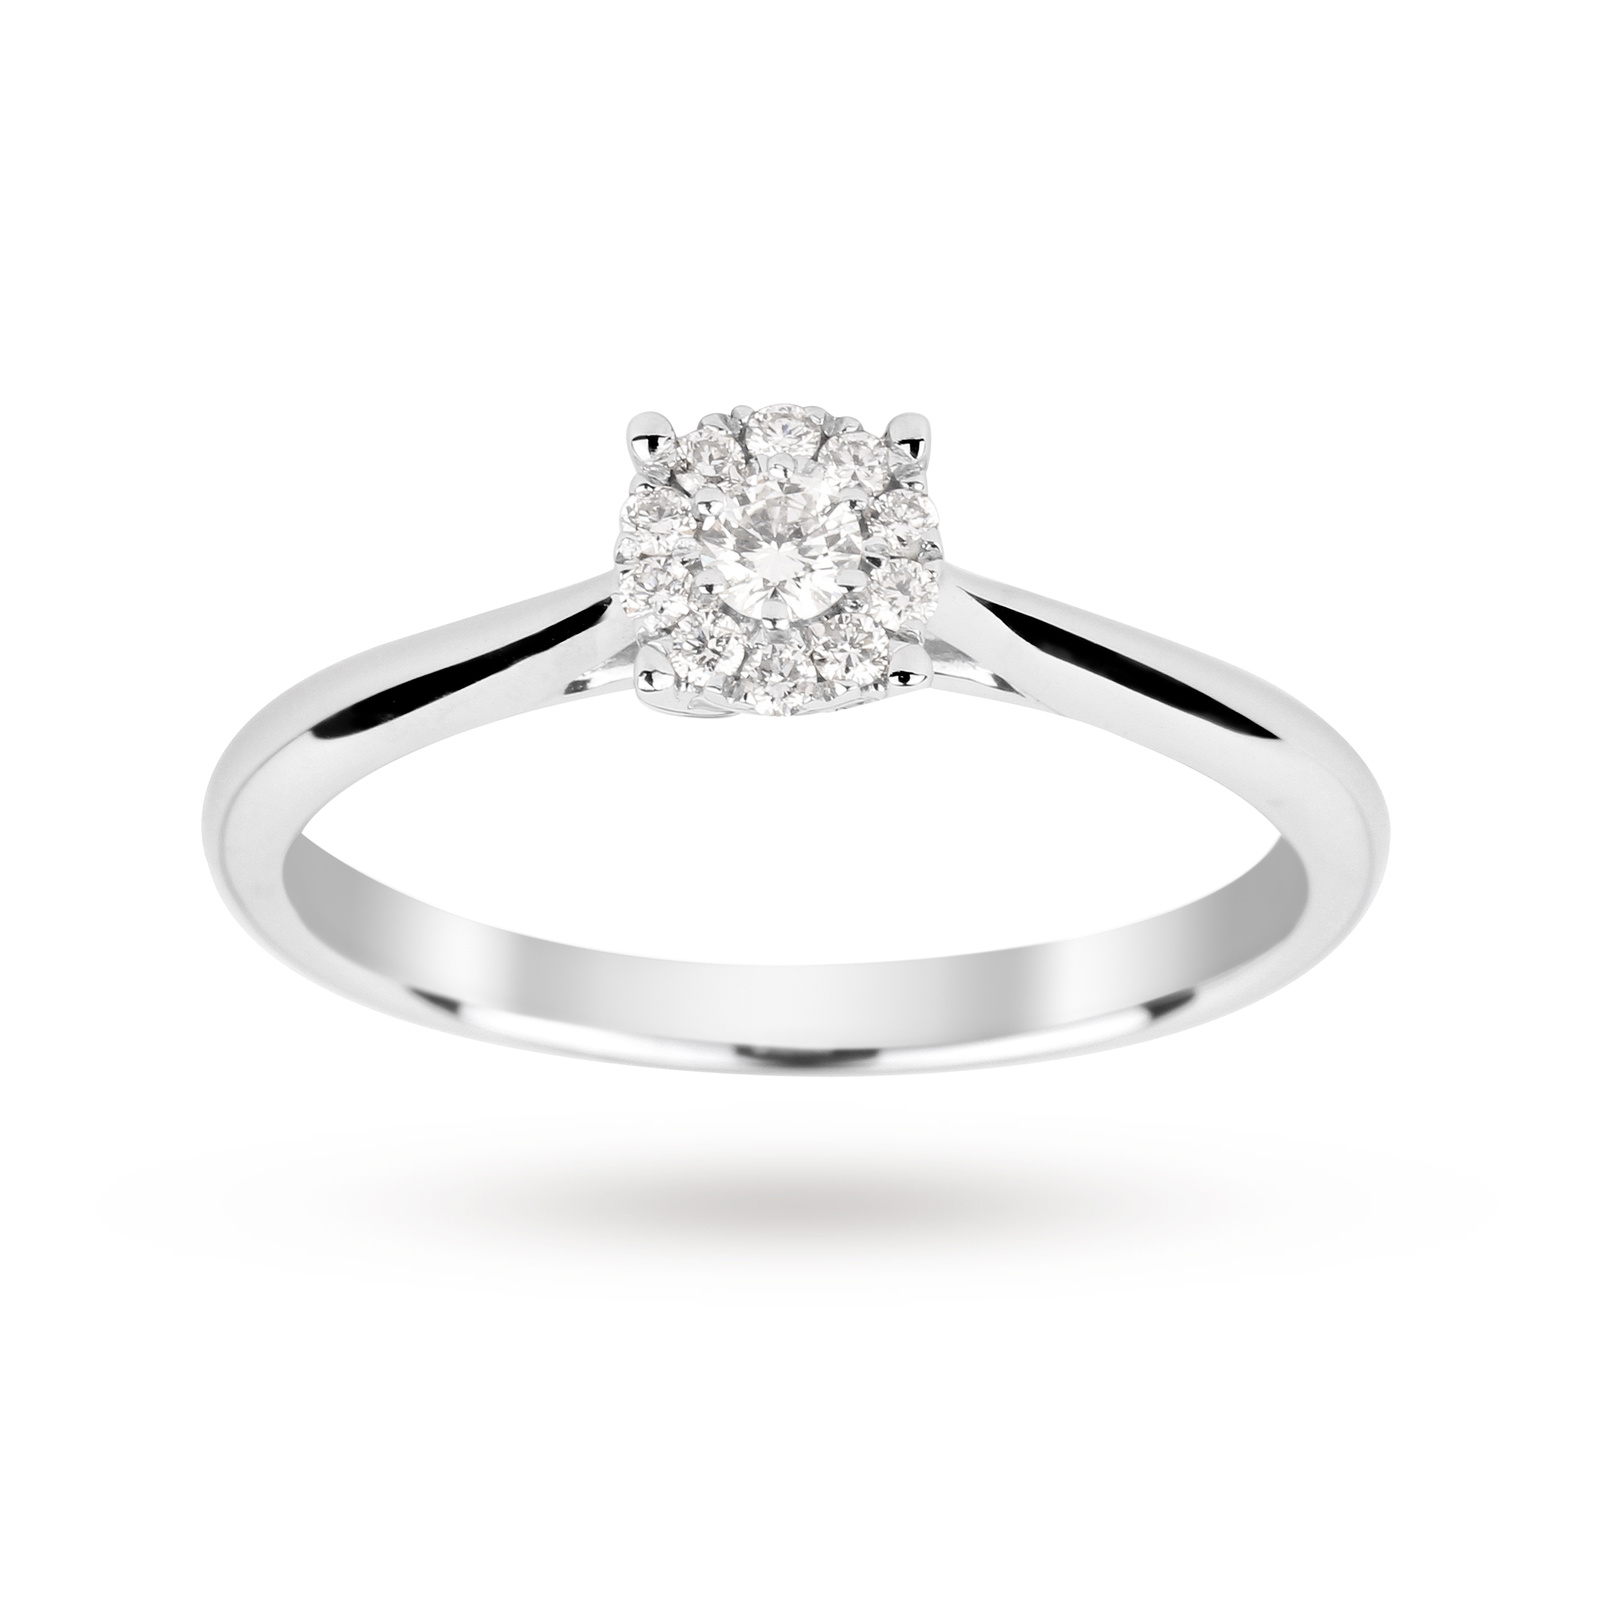 Brilliant cut 0.15 carat solitaire diamond ring in 9 cara ...